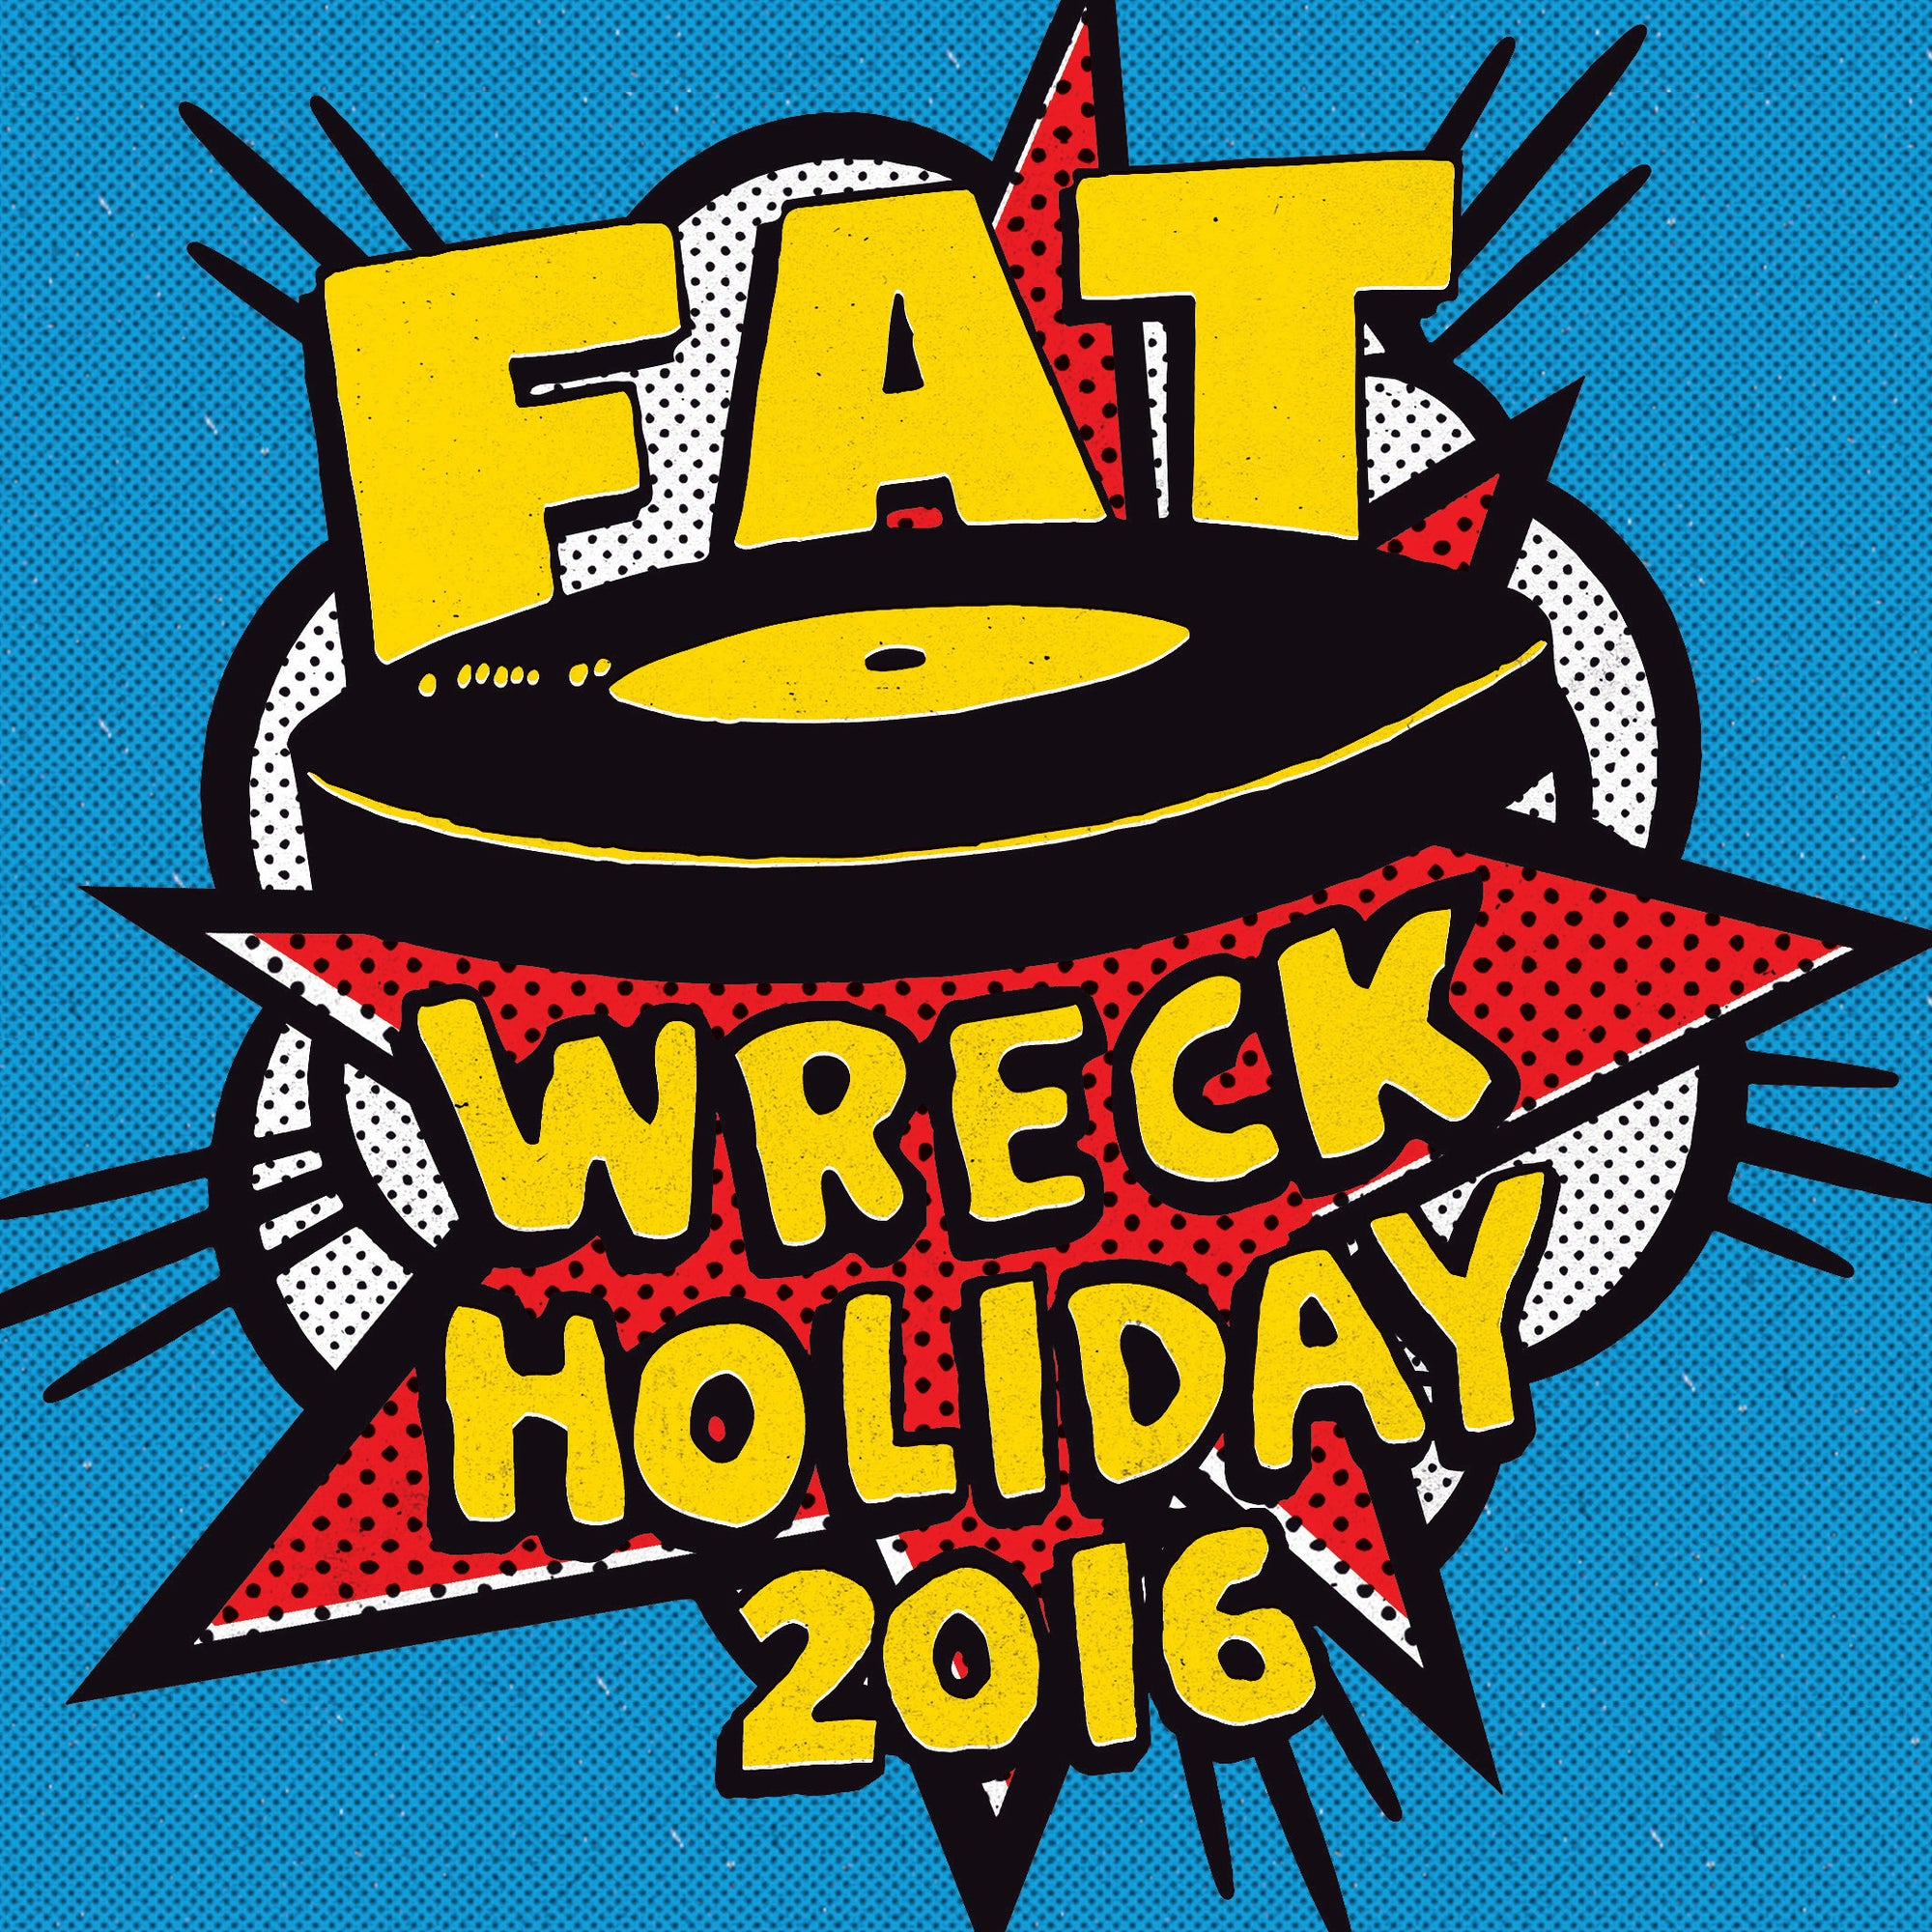 Fat Wreck Holiday 2016